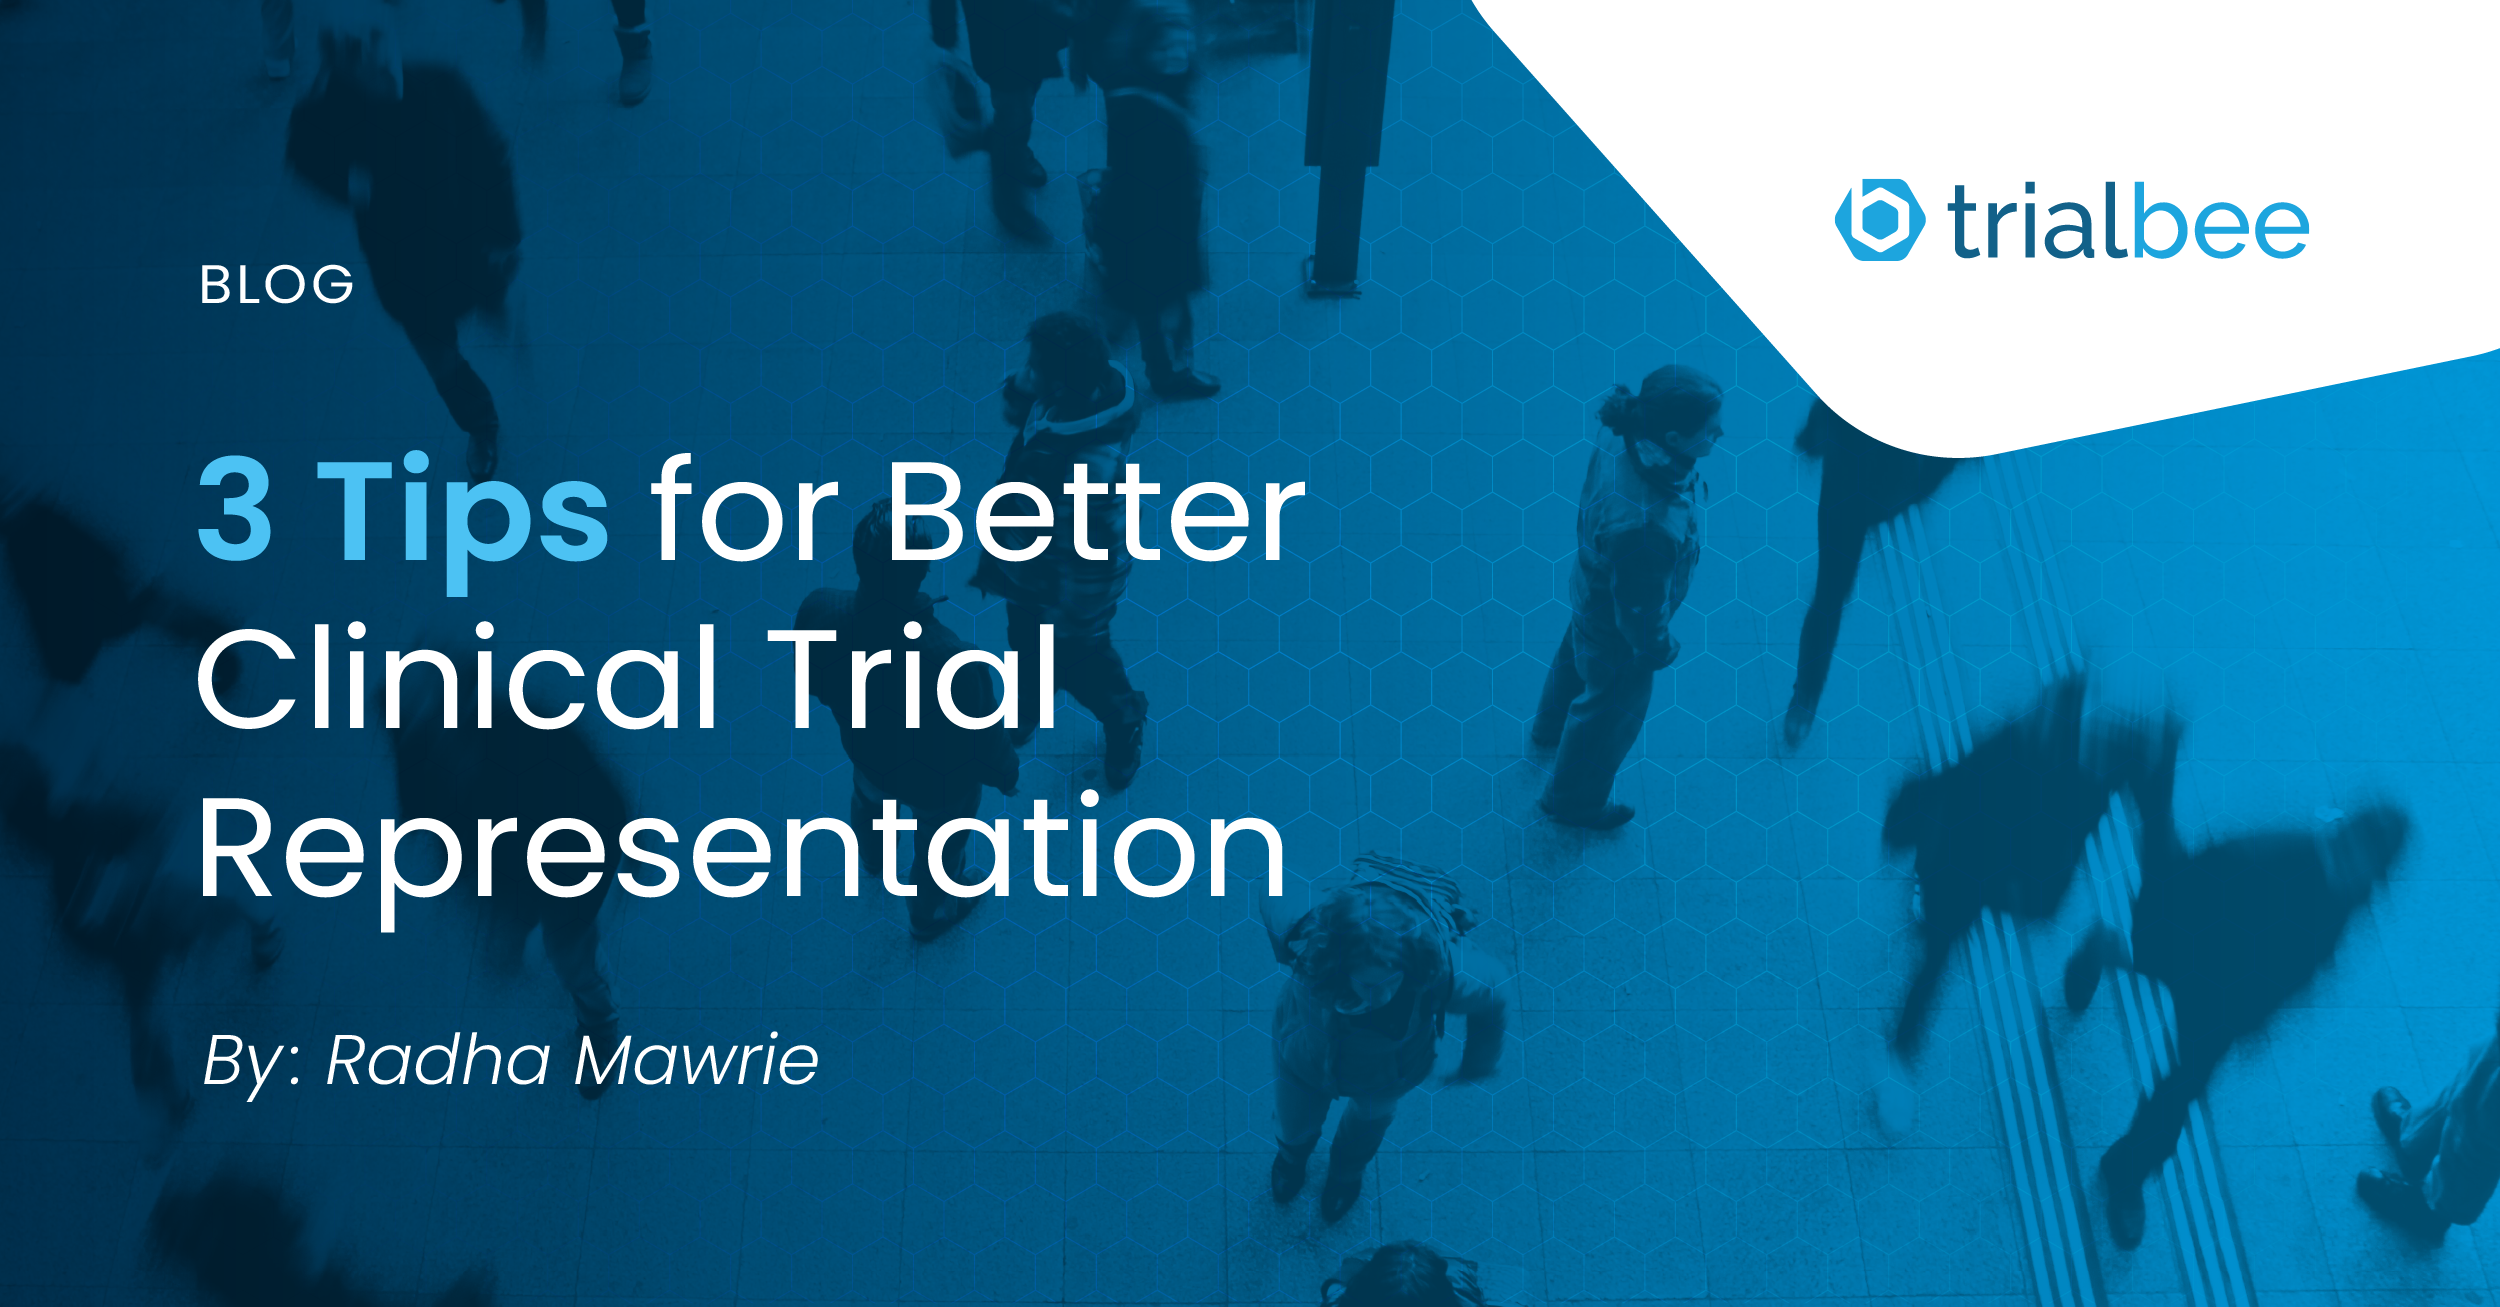 3 Tips for Better Clinical Trial Representation